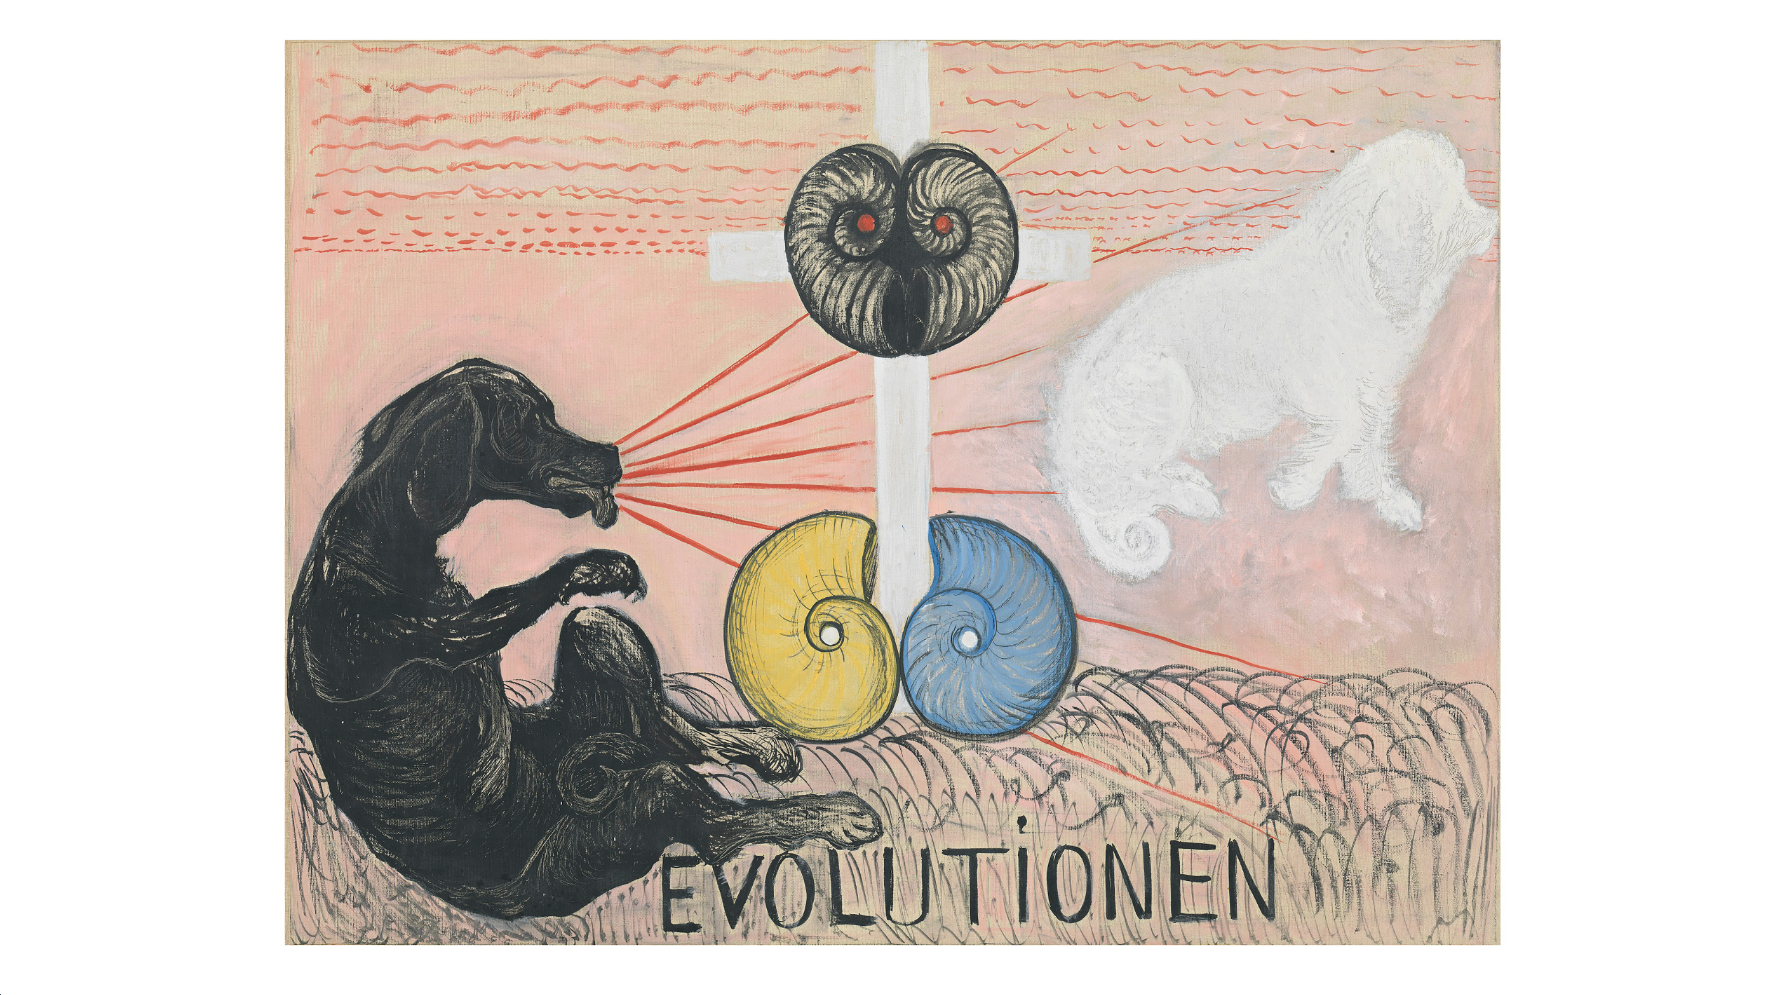 (Hilma af Klint: 'Group VI, No5 Evolution', 1908. Courtesy of Stiftelsen Hilma af Klints Verk)